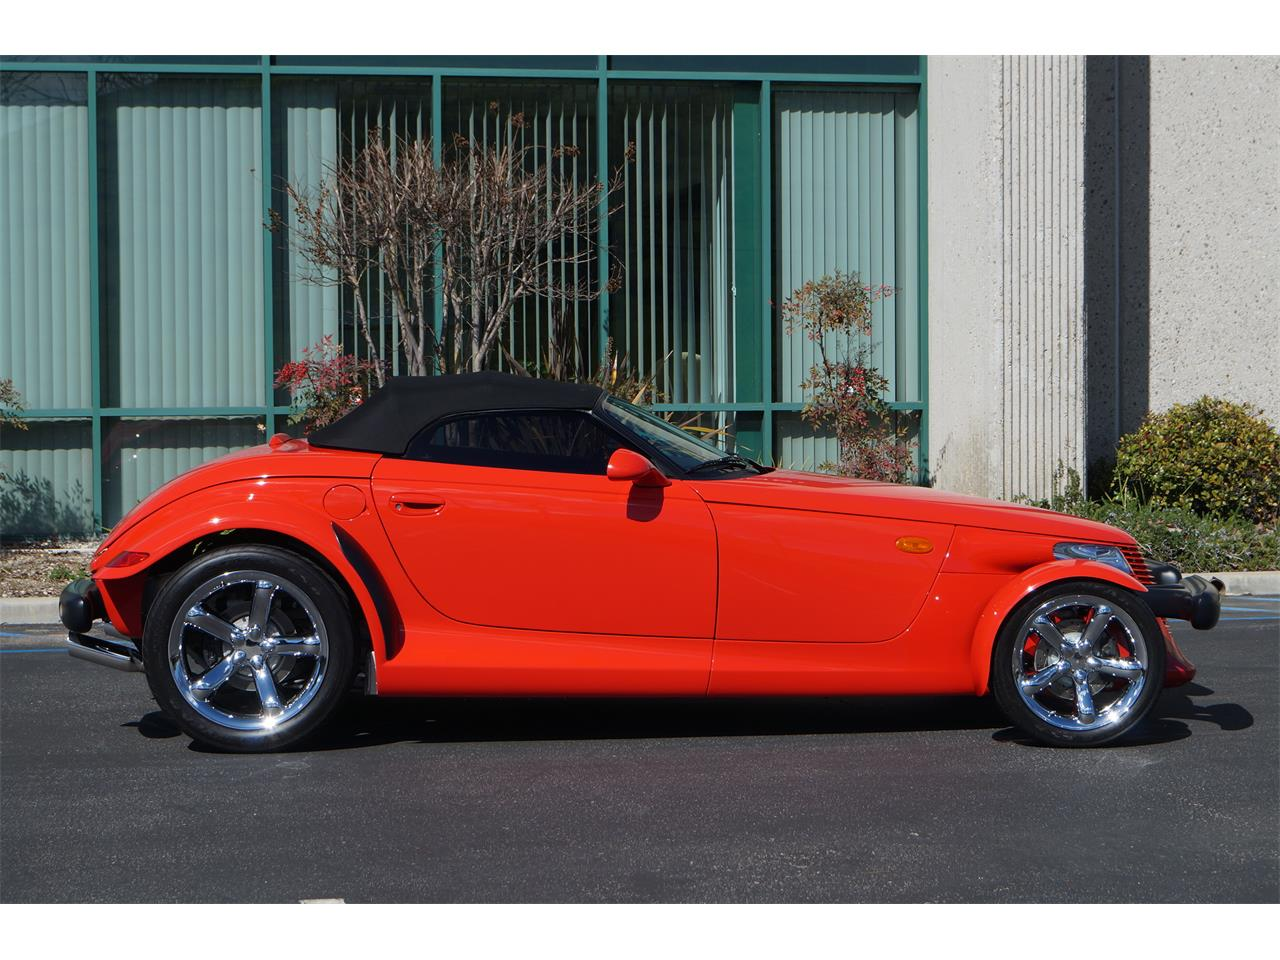 2000 Plymouth Prowler for sale in Thousand Oaks, CA – photo 43